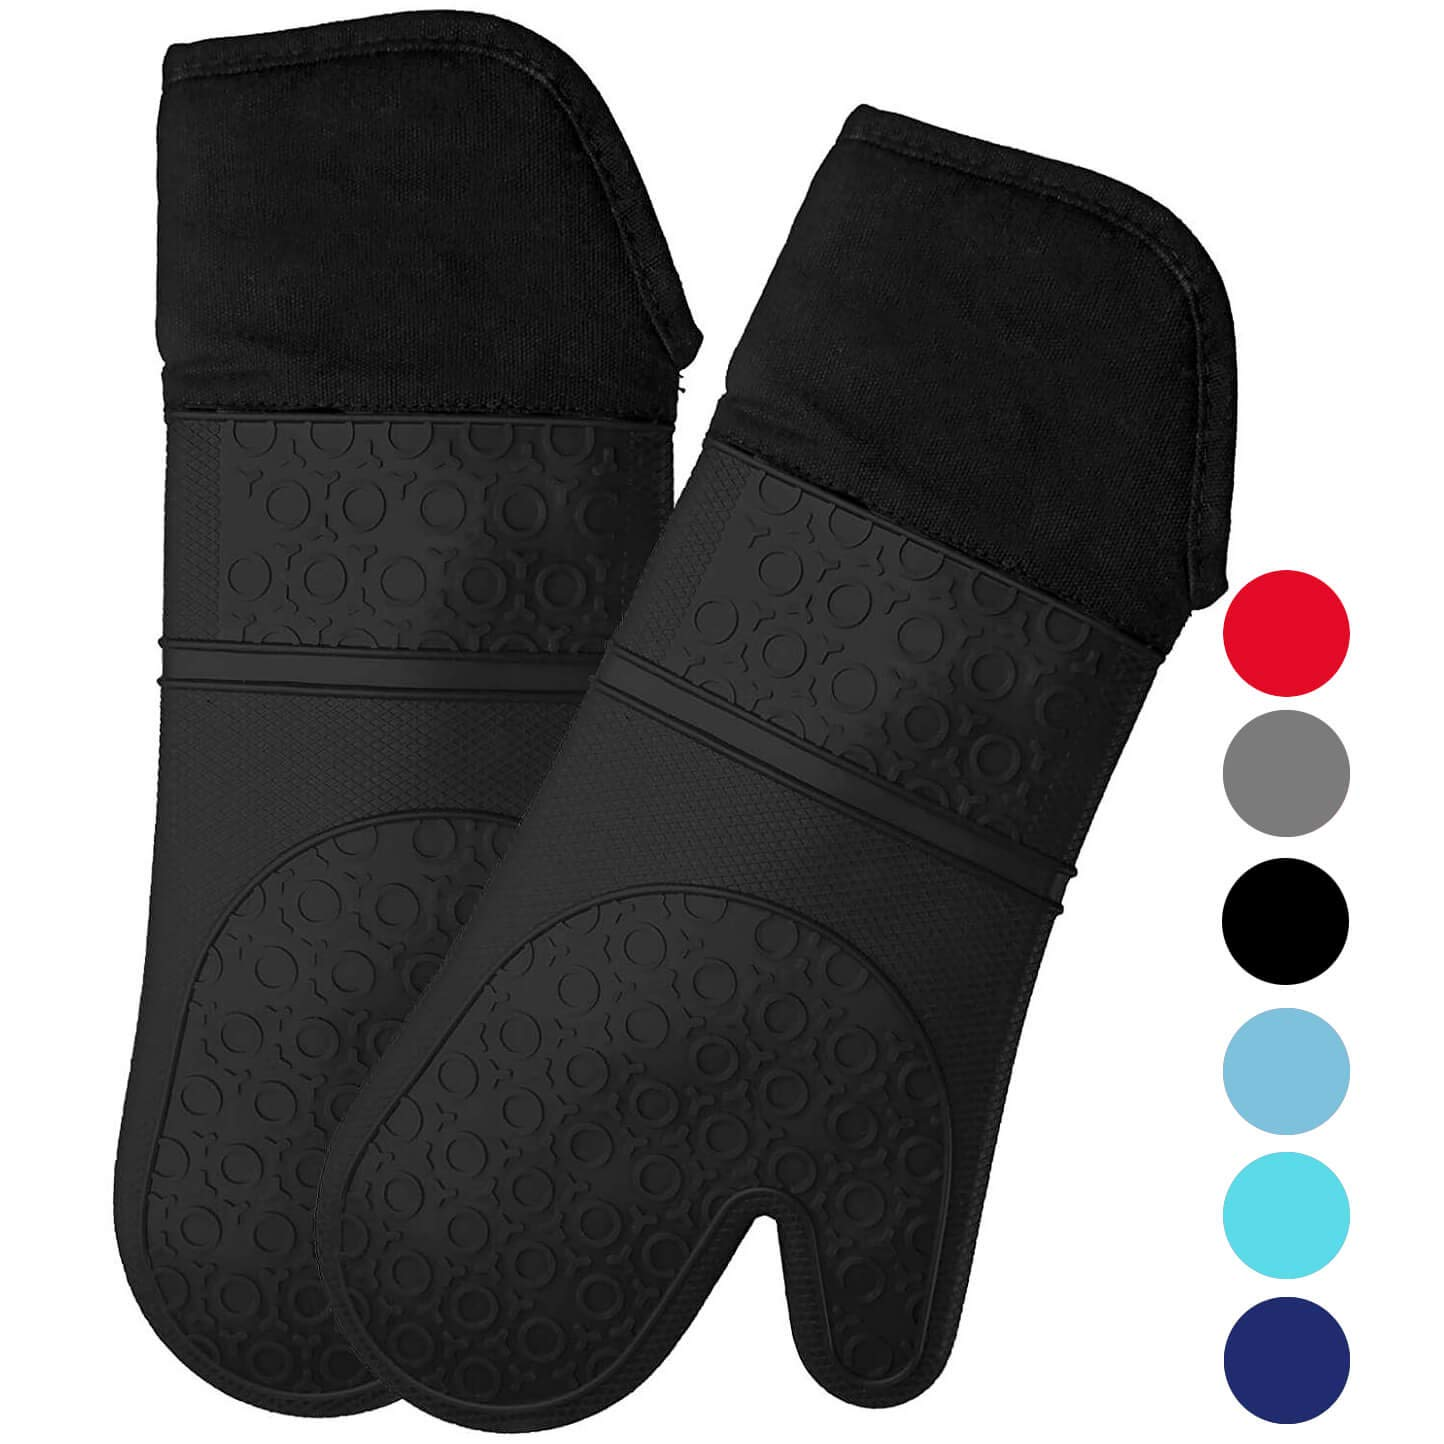 Homwe Extra Long Silicone Oven Mitts with Quilted Cotton Lining